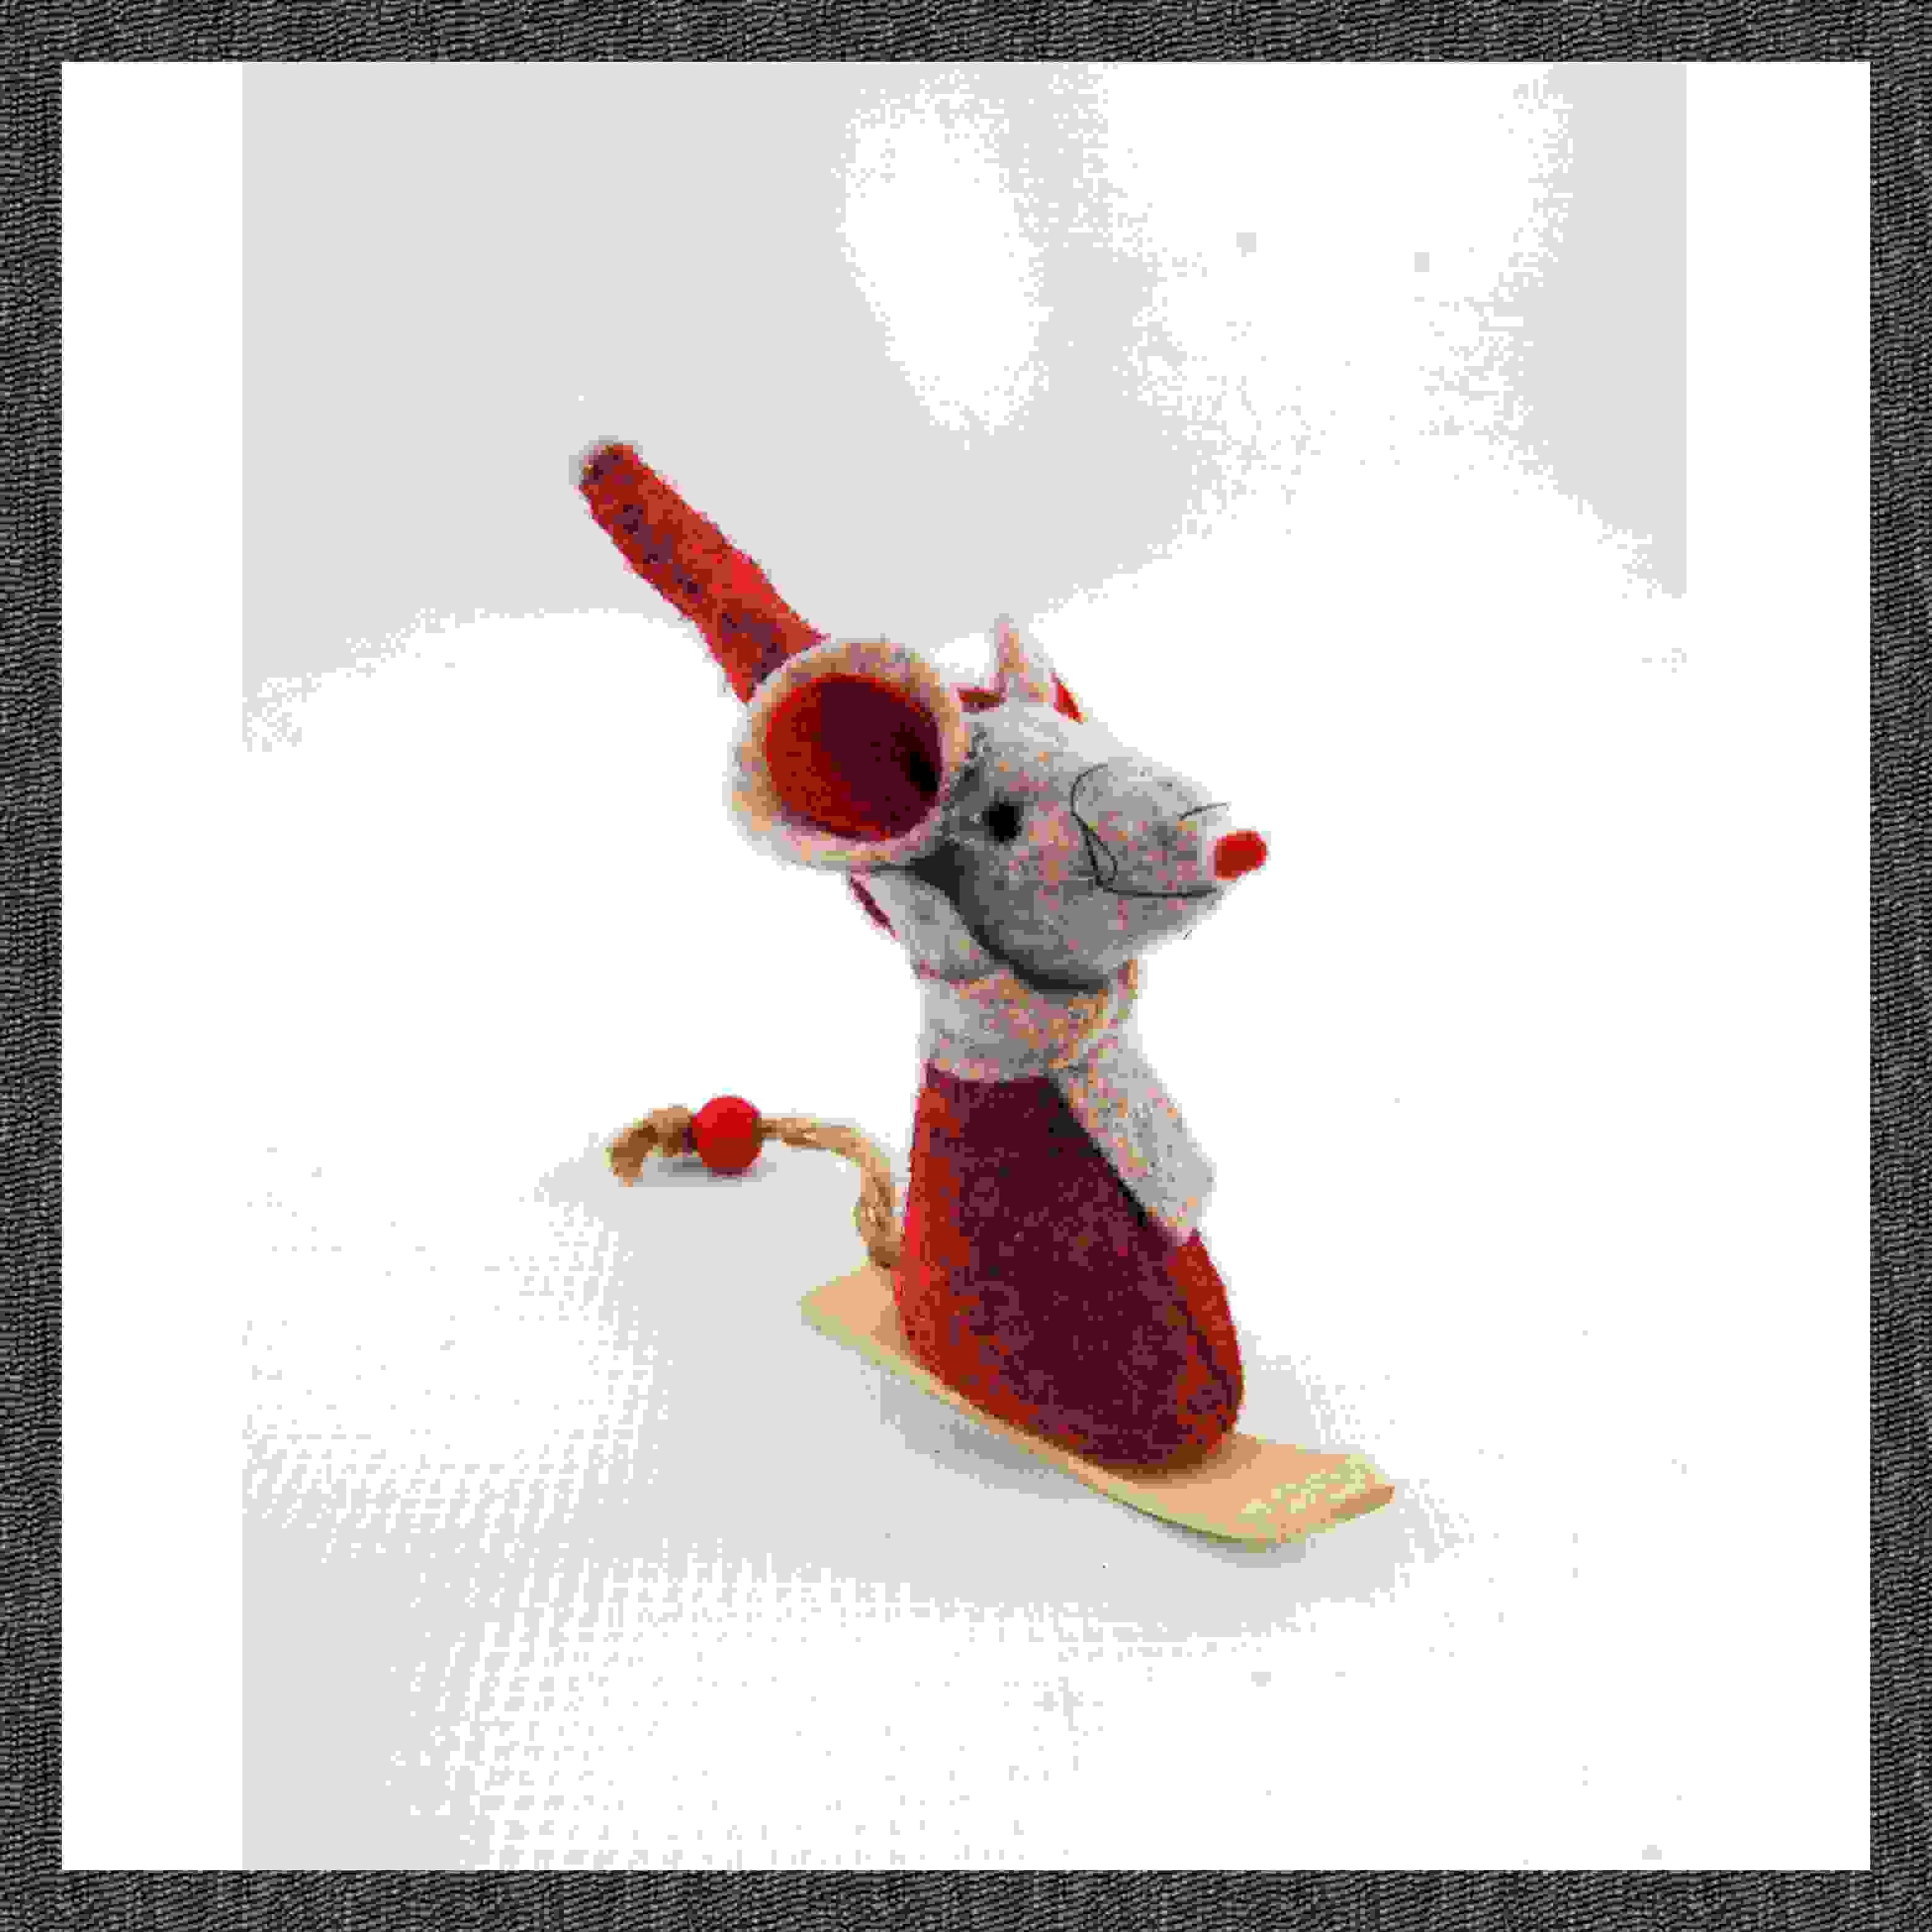 STAND SNOWBOARDING MOUSE 8cm RED